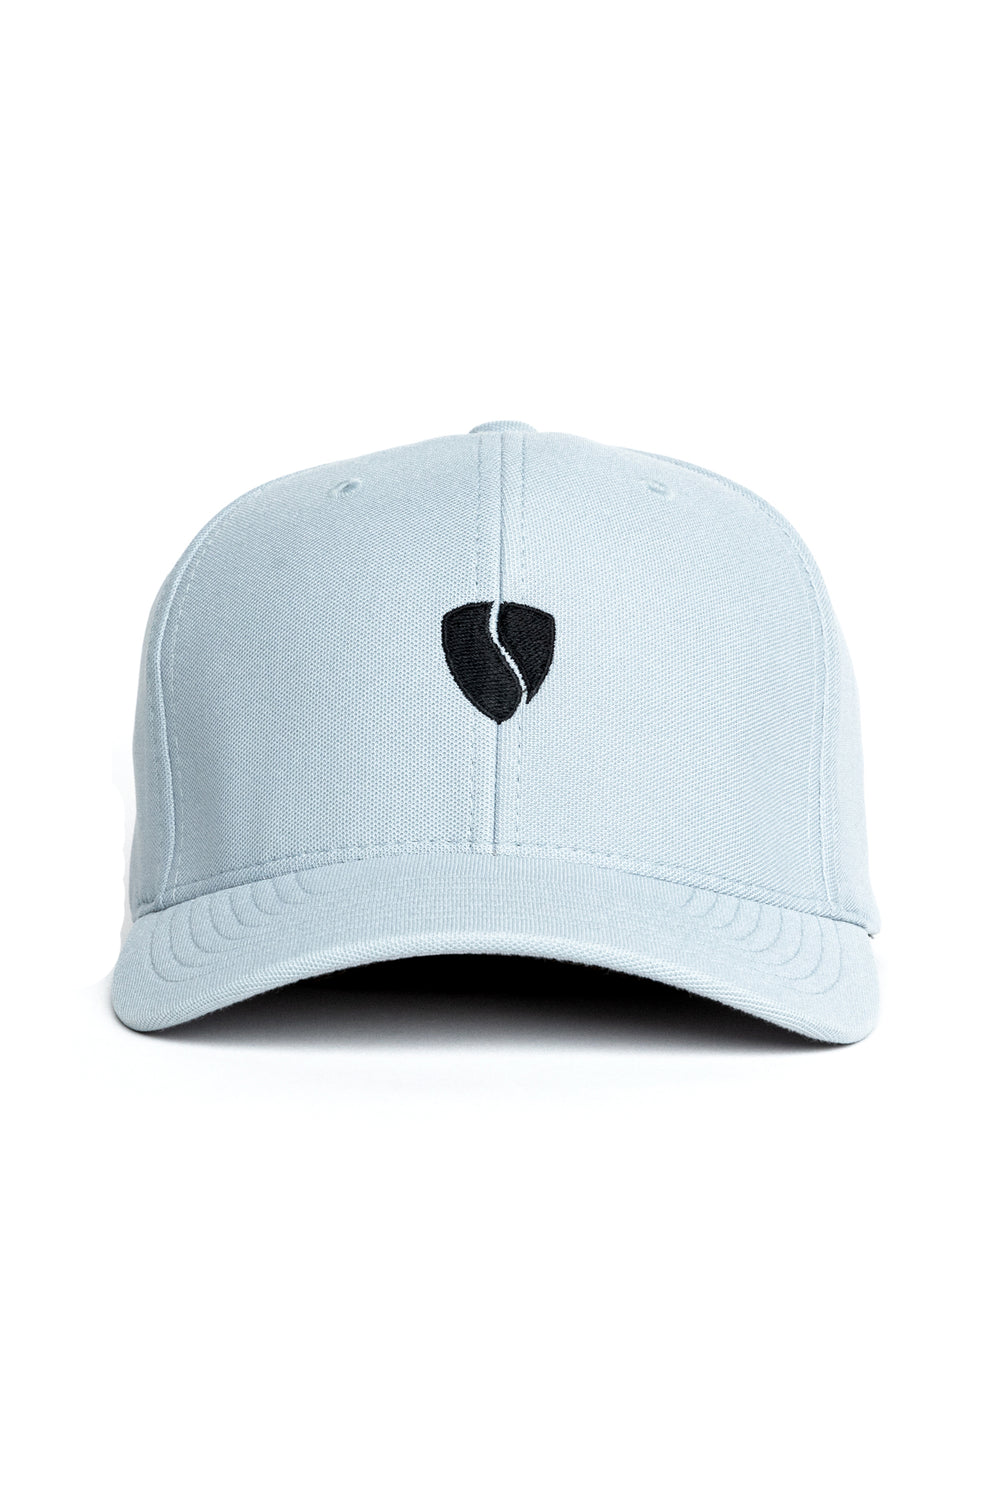 Apollo Hat - Grey/Black